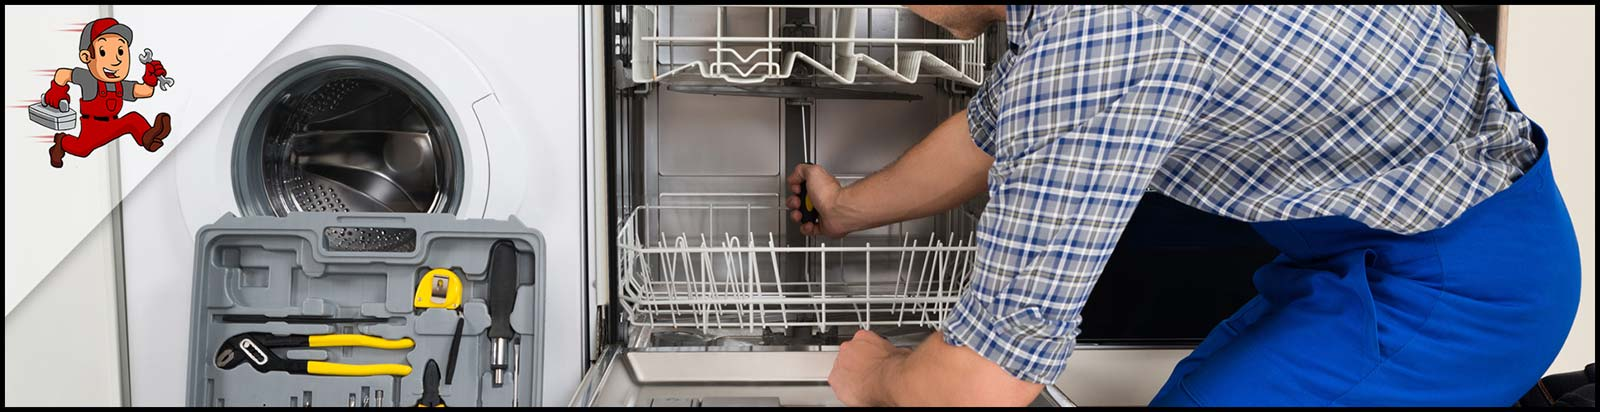 Residential Appliance Repair And Service In Northern